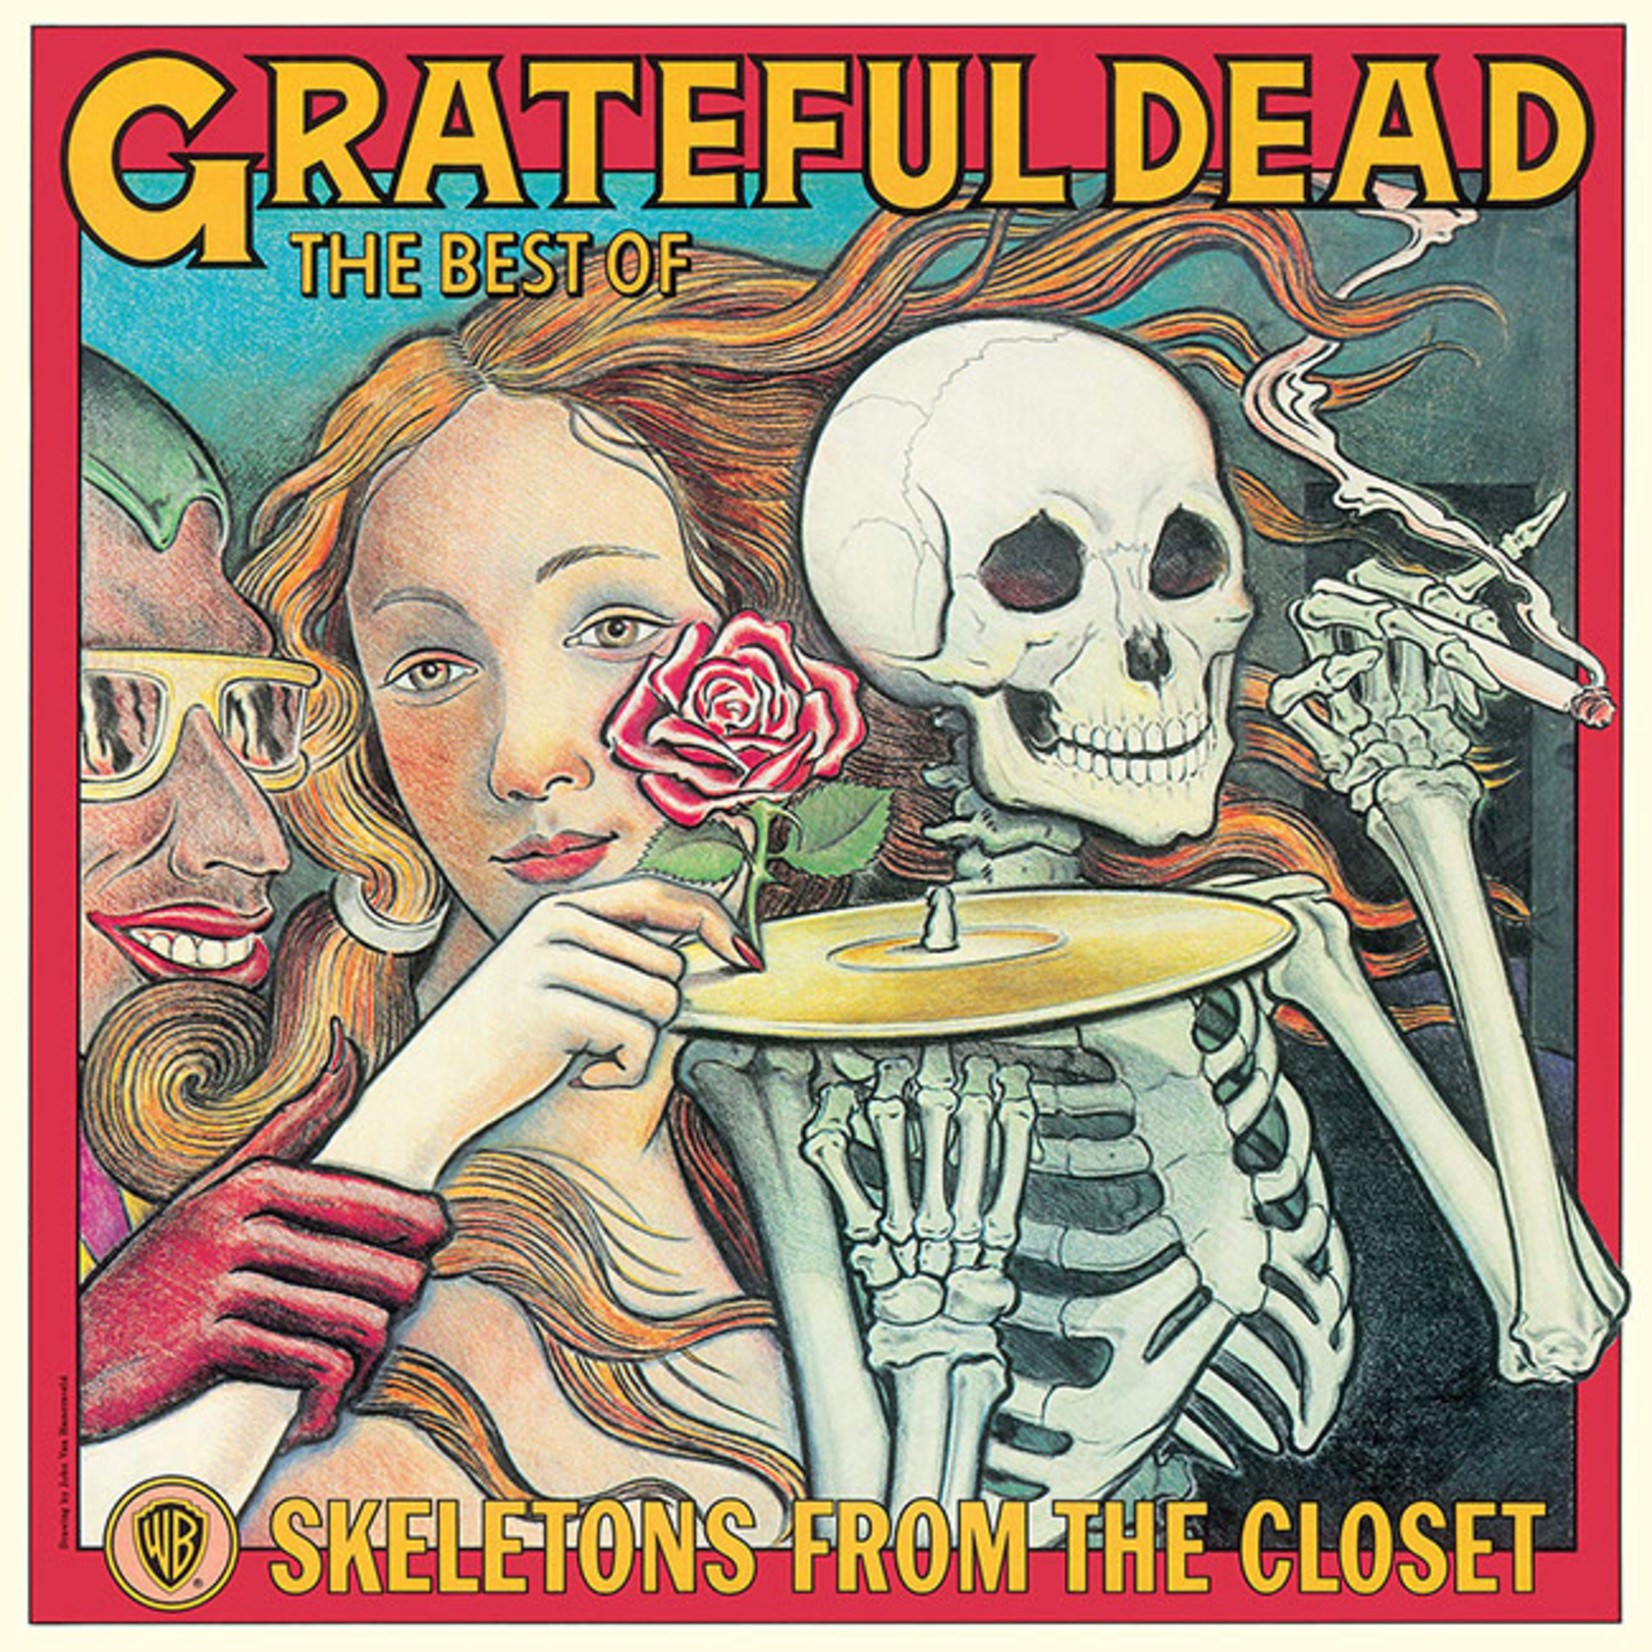 [New] Grateful Dead: Skeletons From The Closet: The Best Of Grateful Dead